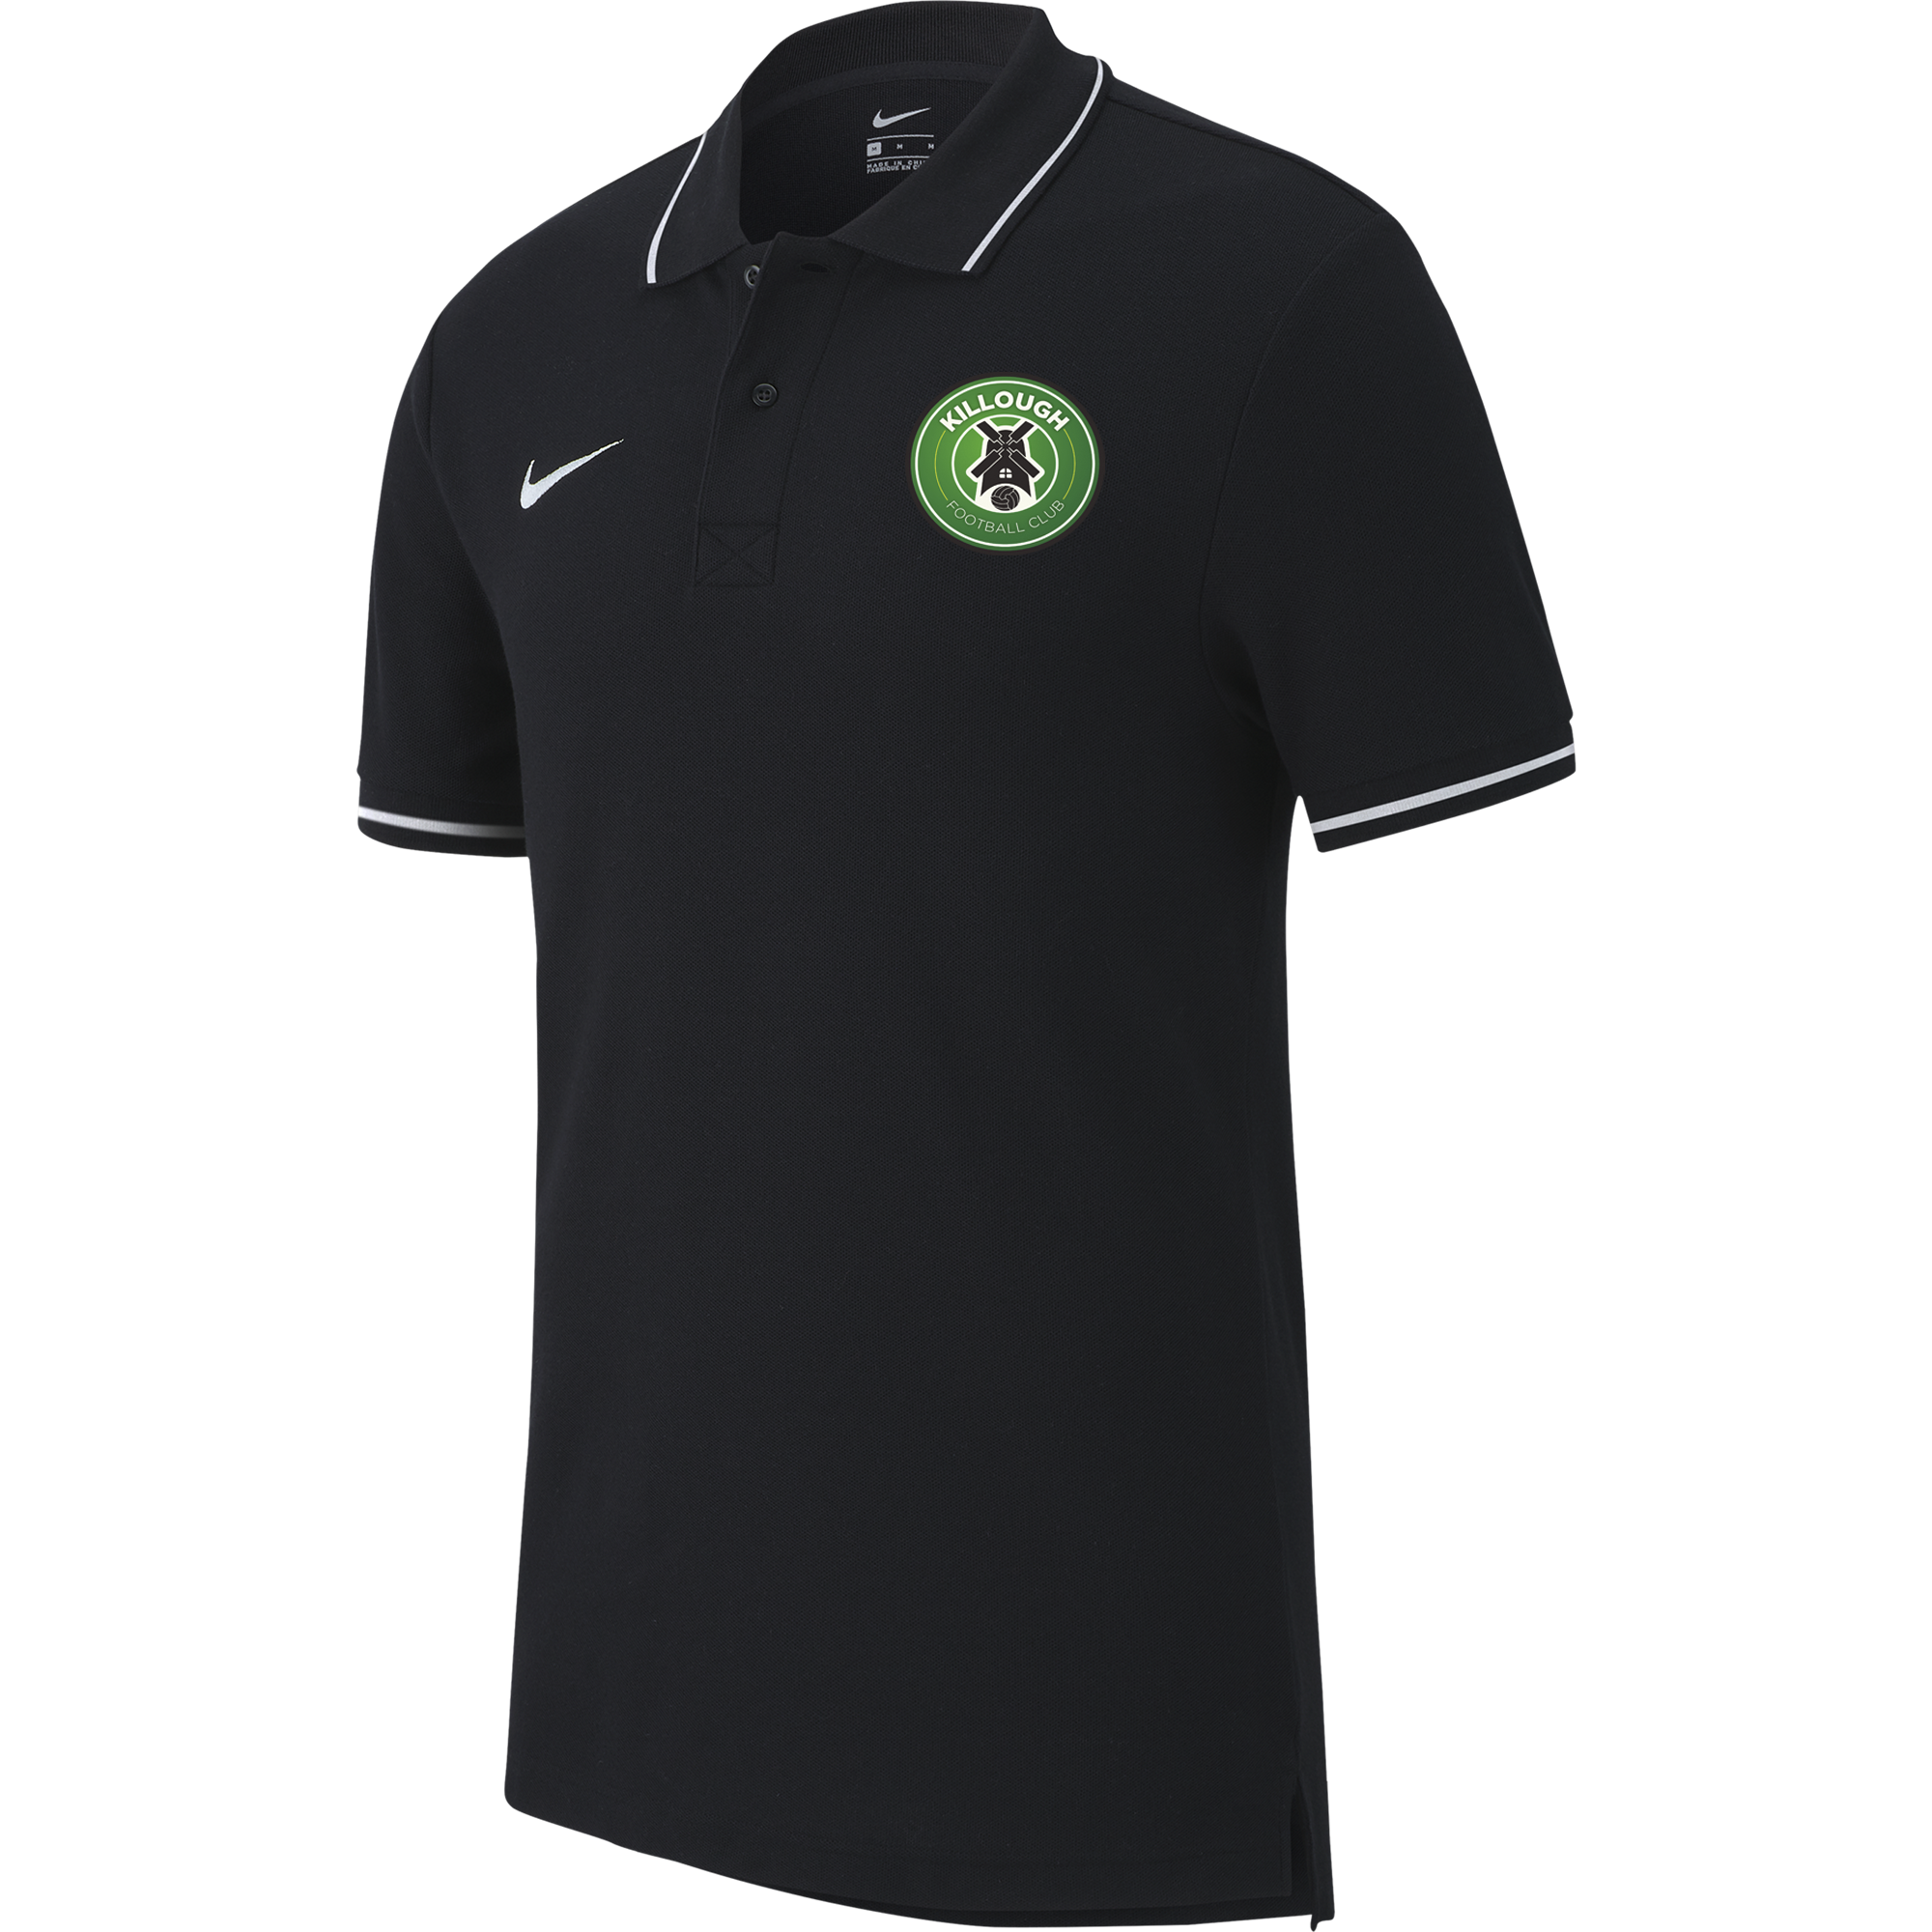 killough fc club polo size xxl mens 36622 p